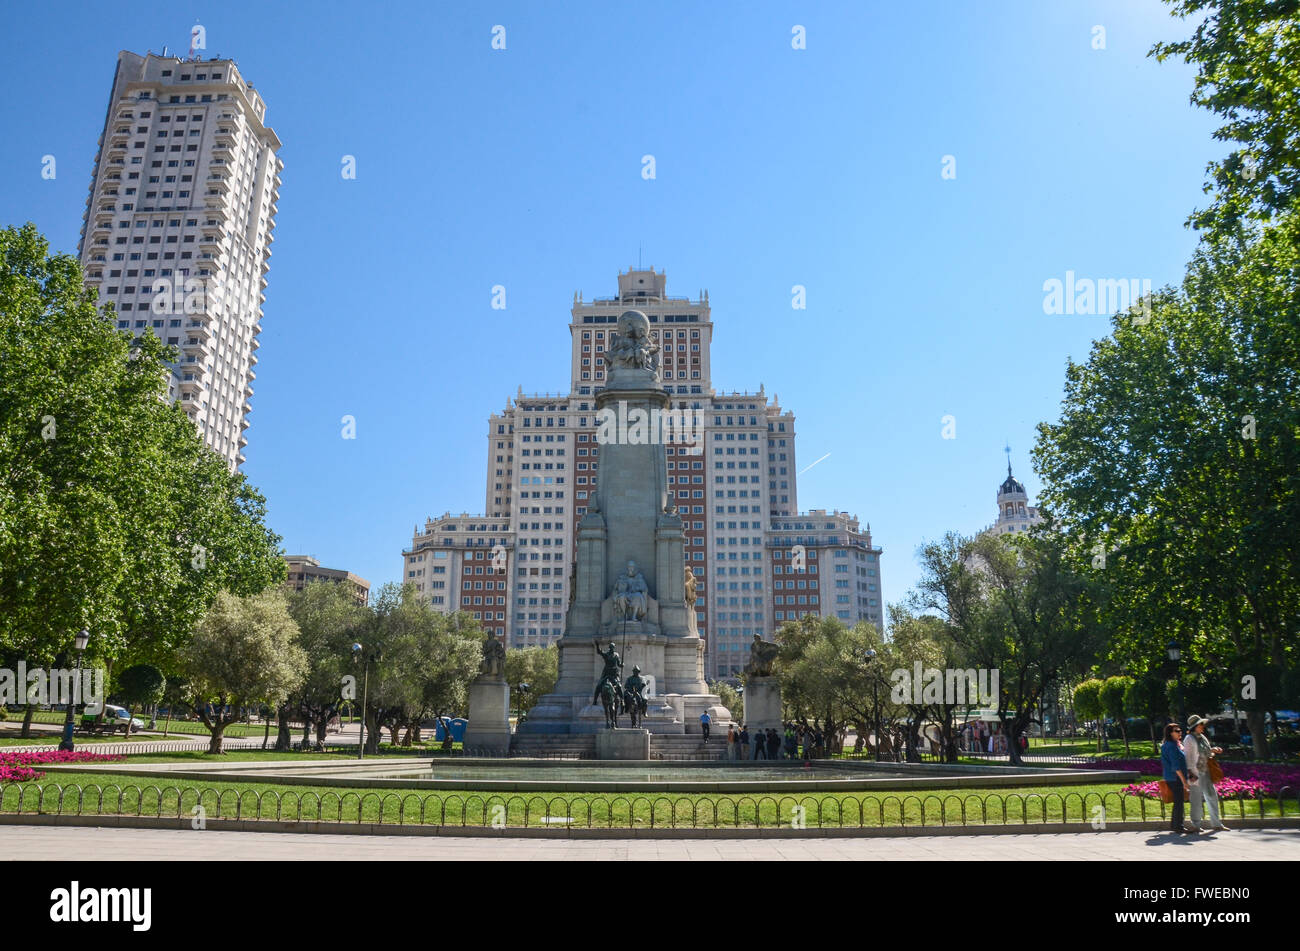 The Cervantes monument.  Plaza de España is a large square, and popular tourist destination, located in central - Stock Image